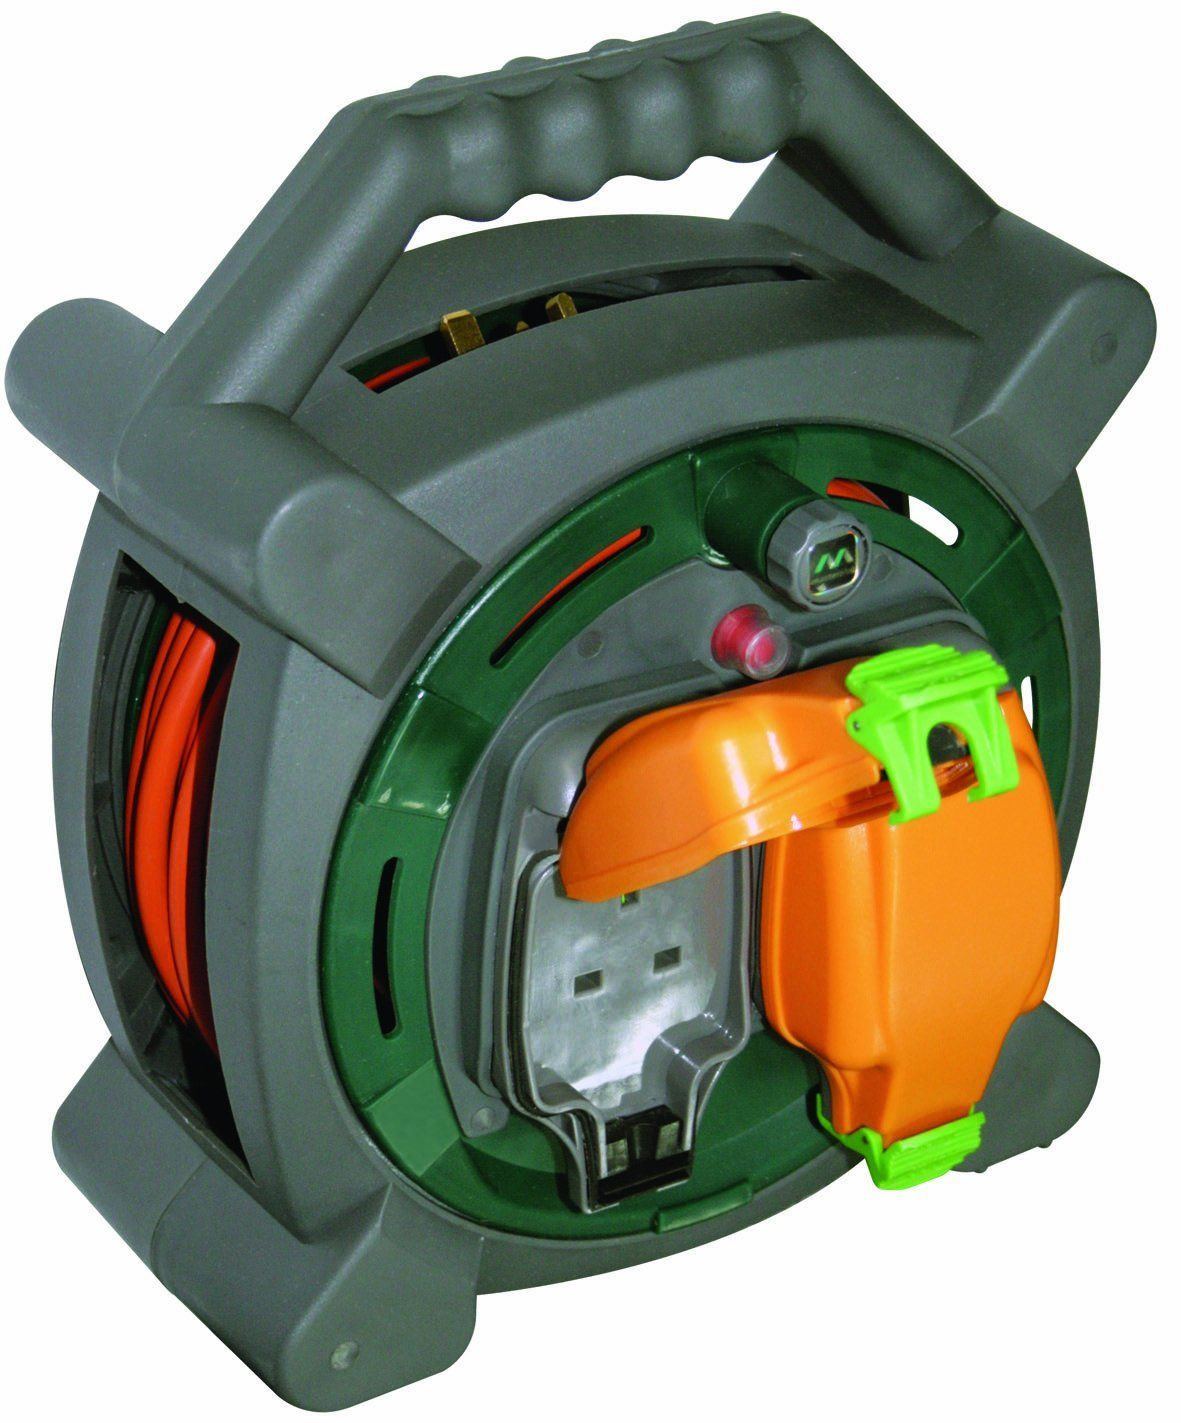 Masterplug HLP2013/2IP 20m Outdoor IP Rated Cable Reel